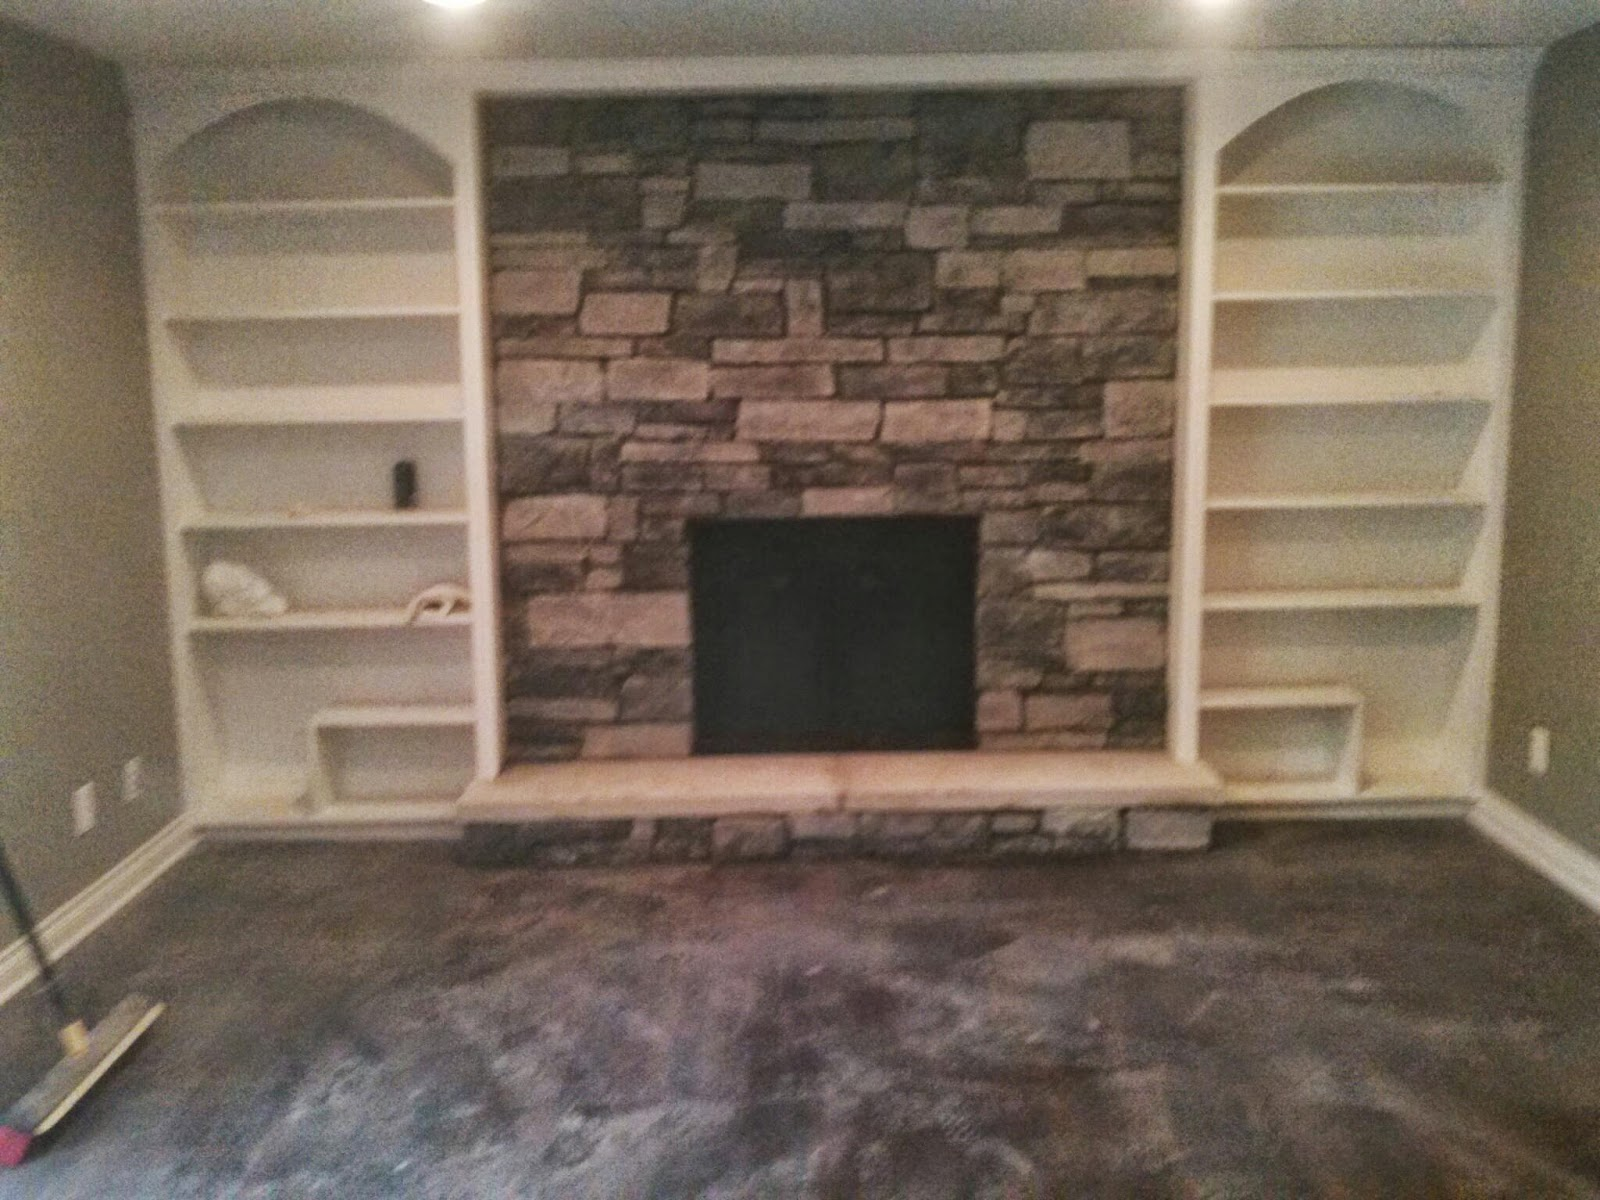 Fireplace Repair Troy Mi Clarkston Fireplaces Repair 313 355 3719